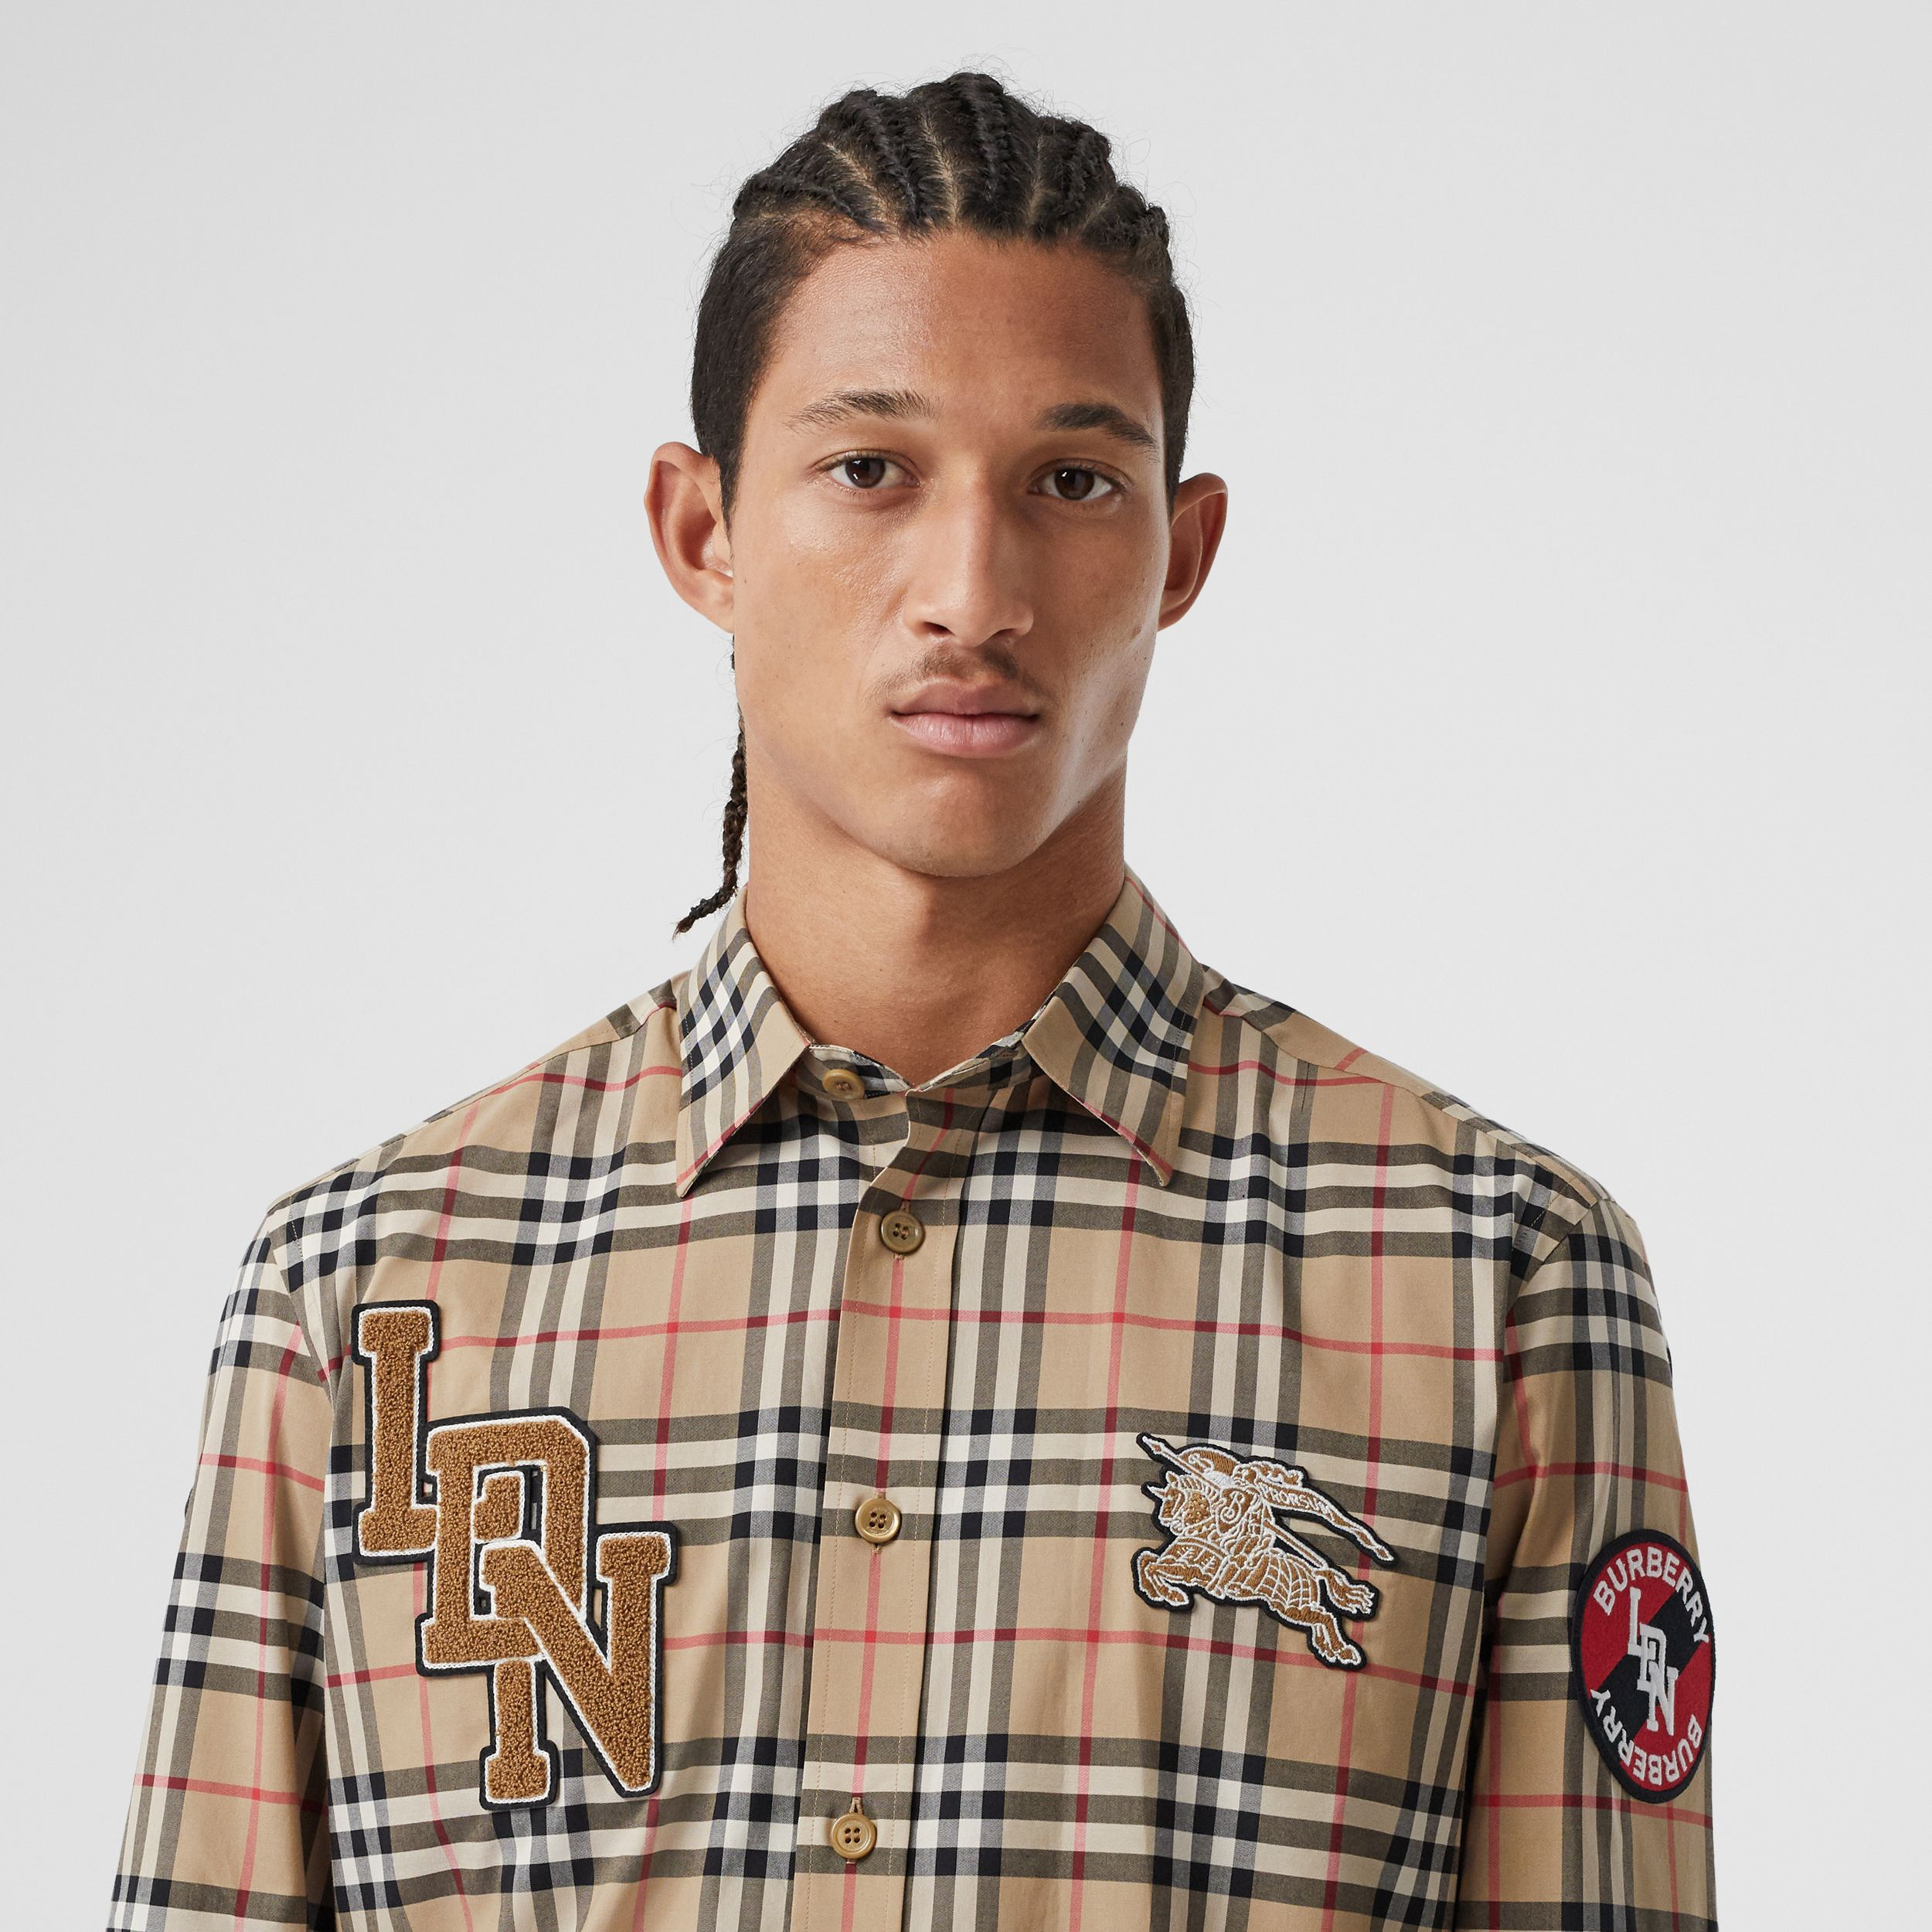 Classic Fit Logo Graphic Vintage Check Cotton Shirt in Archive Beige - Men | Burberry - 2